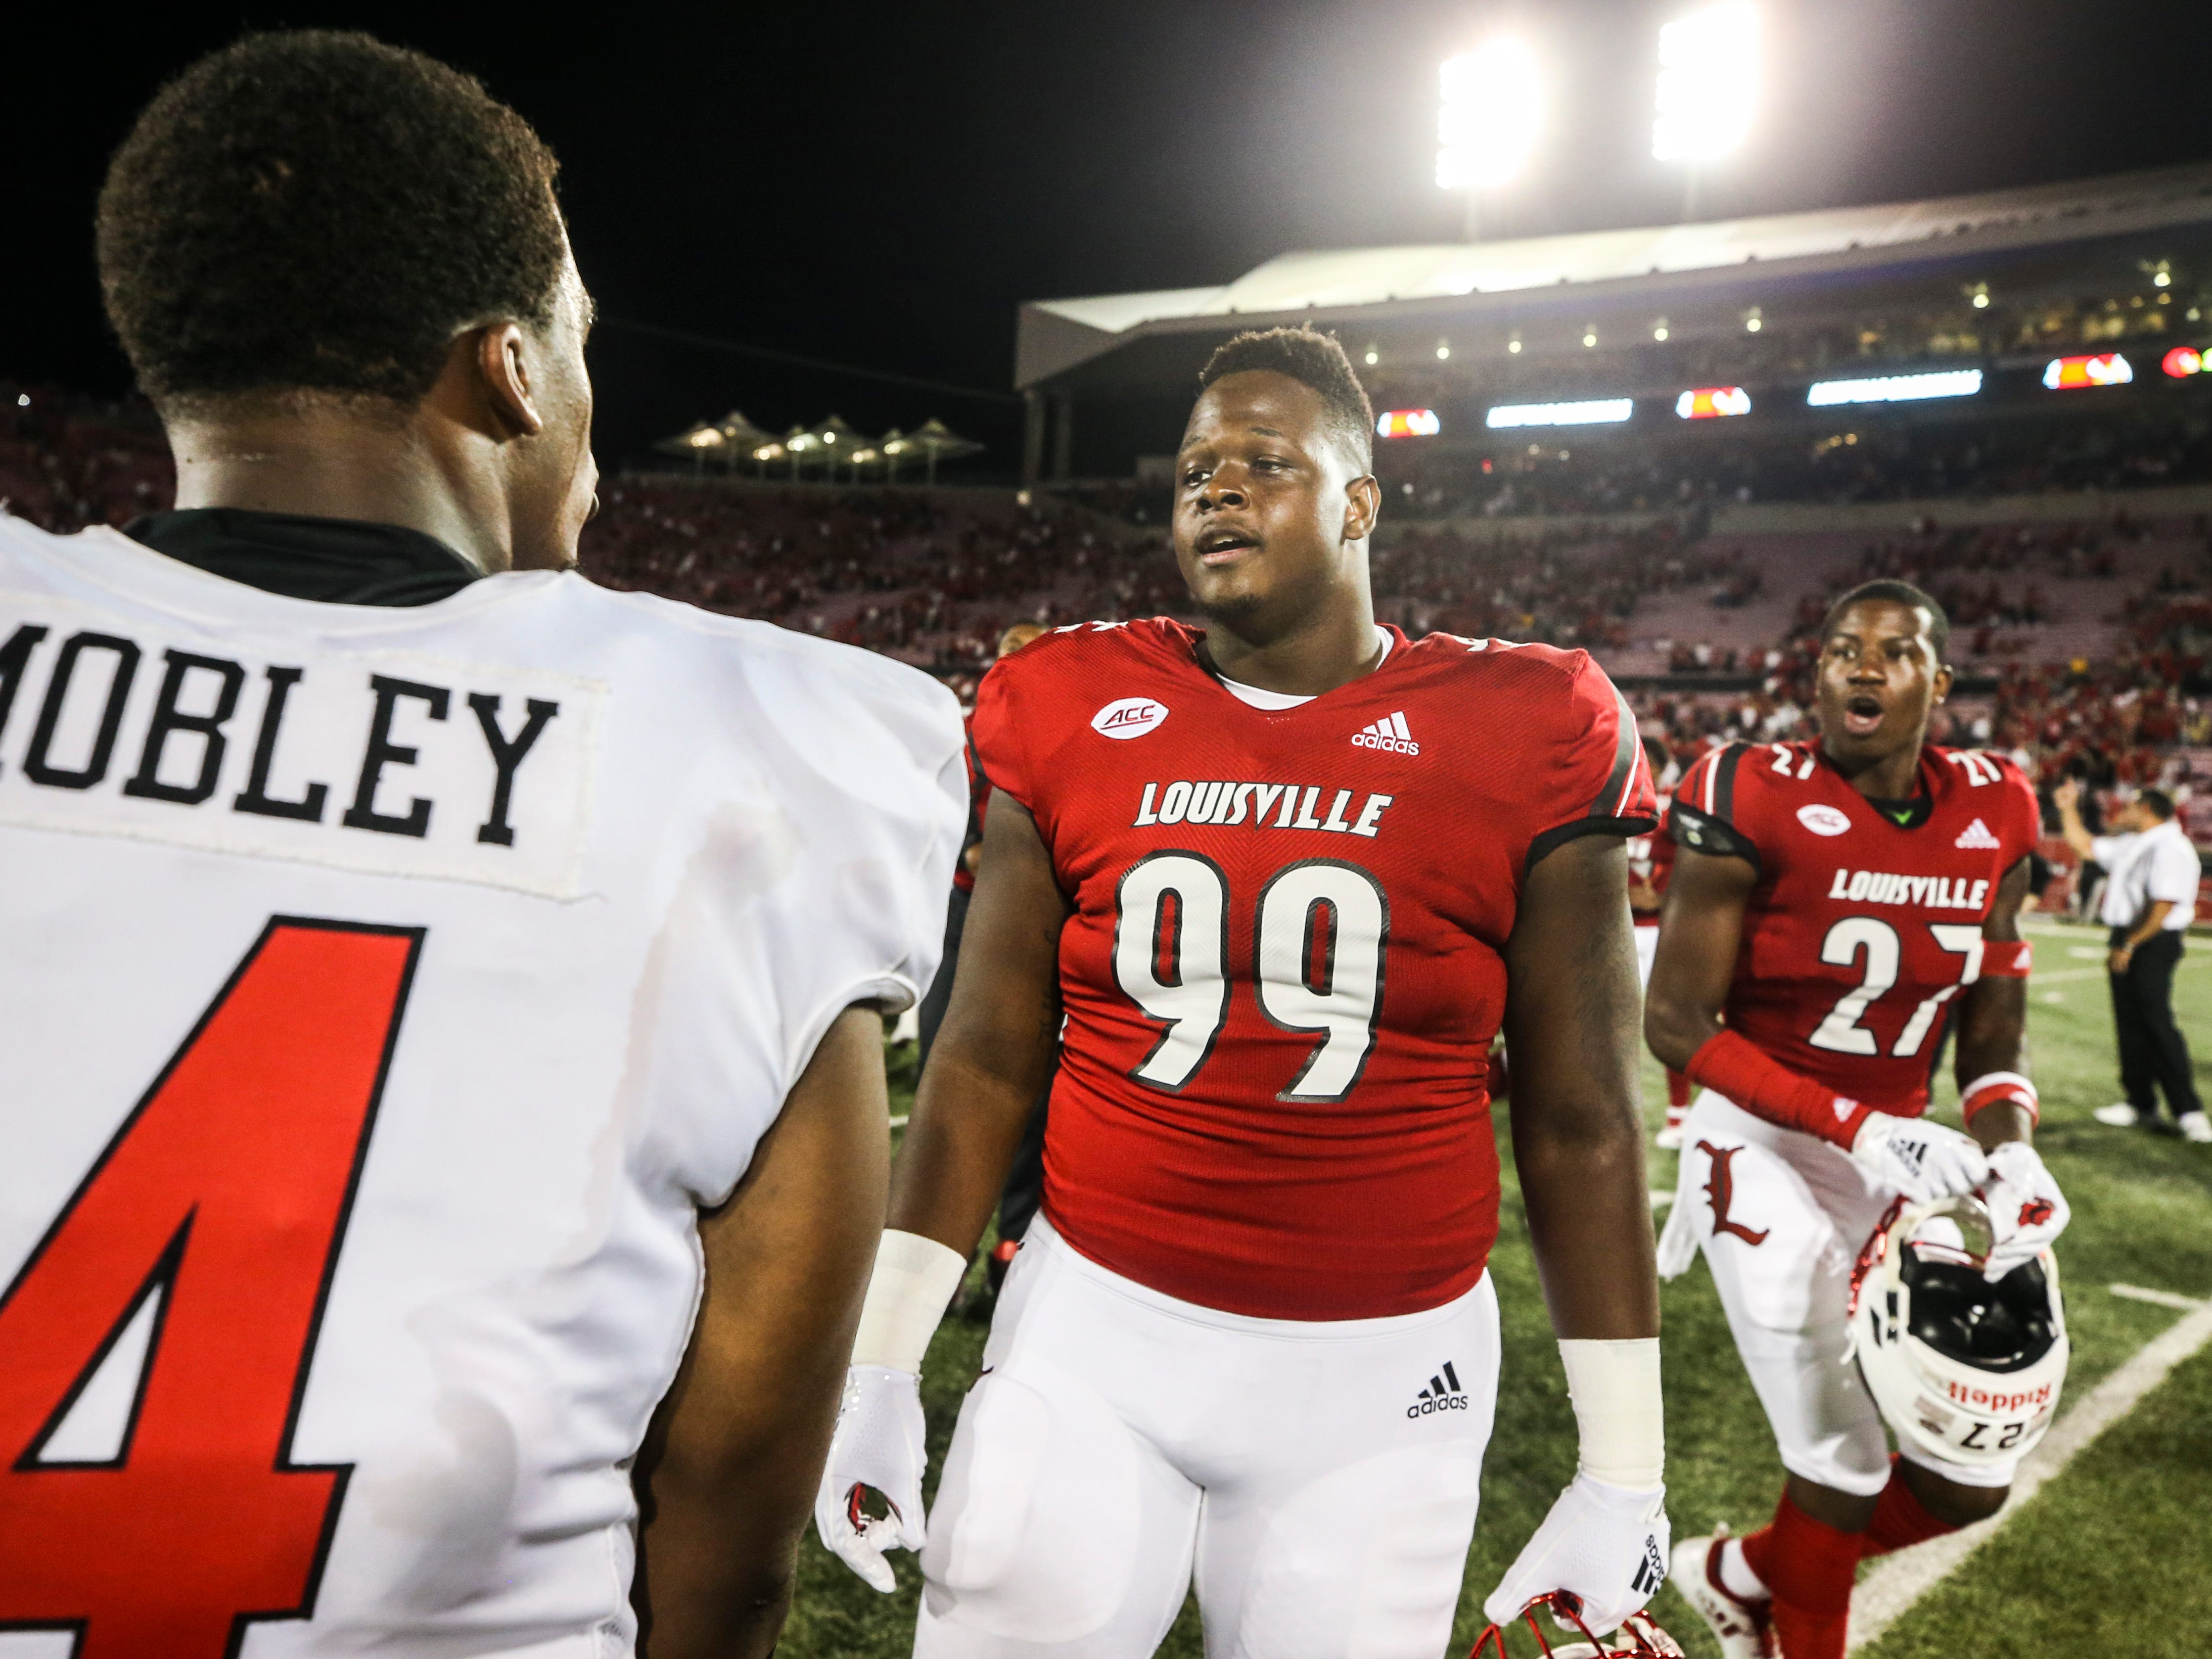 Louisville's Allen Love and Western Kentucky's Der'Quione Mobley exchange words after the Cardinals finally defeated the Hilltoppers 20-17 Saturday, Sept. 15, 2018.